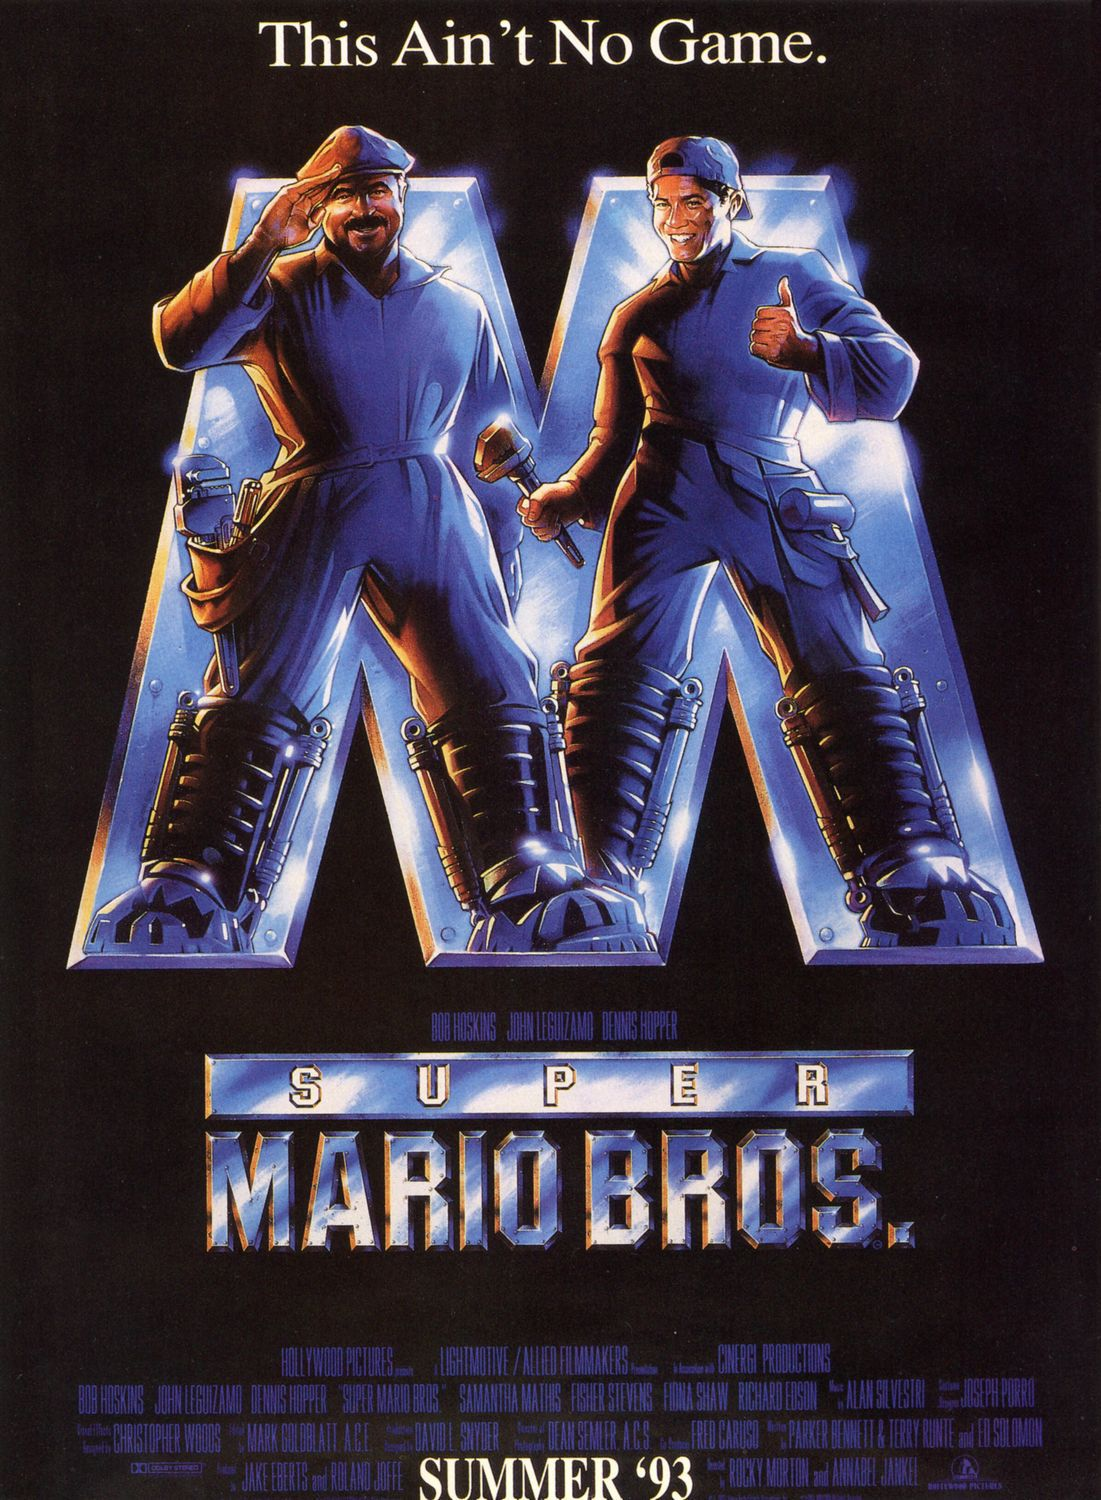 Super Mario Bros live action